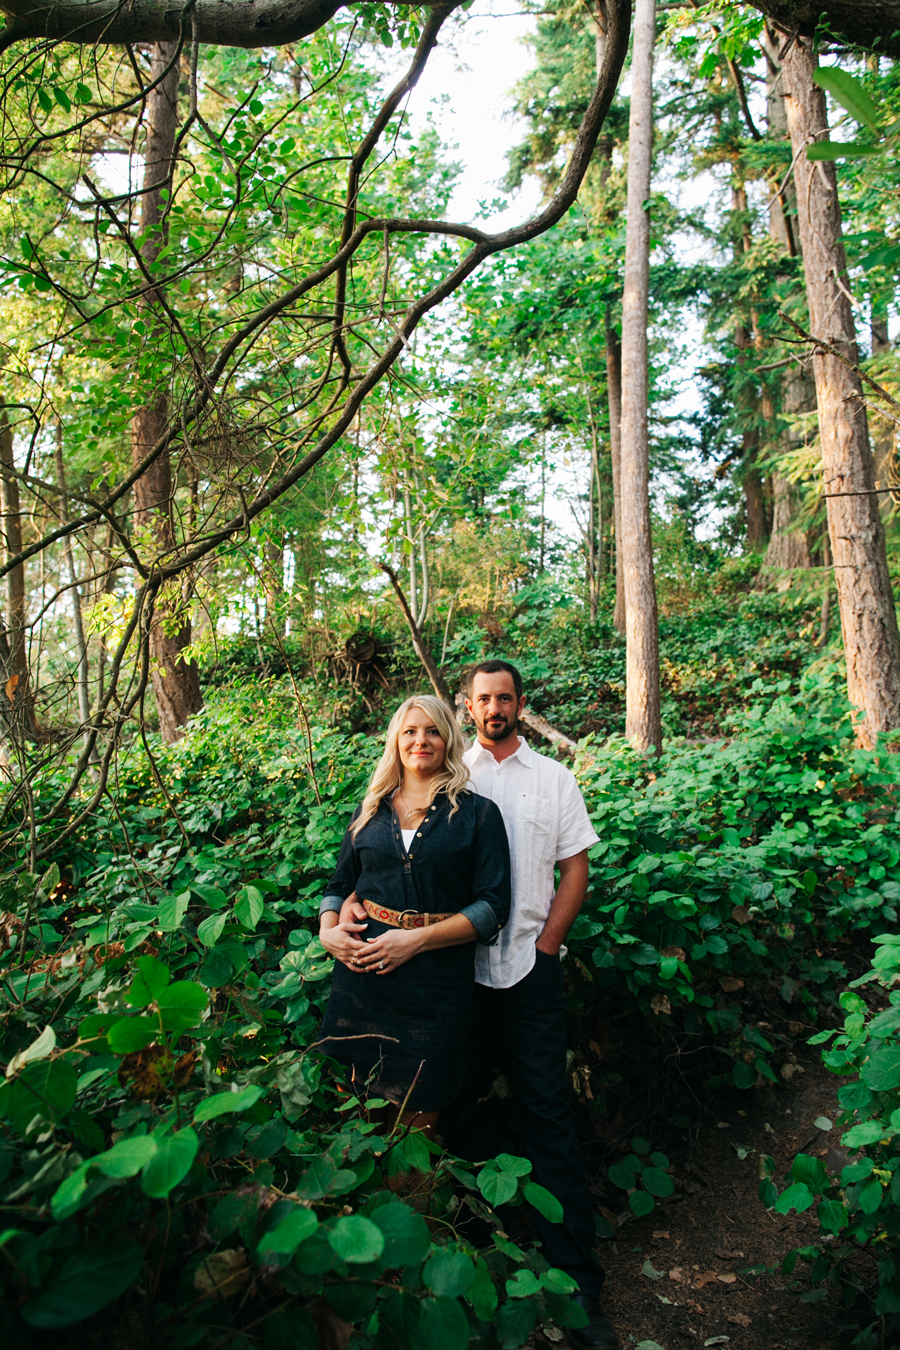 026-larrabee-state-park-engagement-session-bellingham-washington-katheryn-moran-photography.jpg